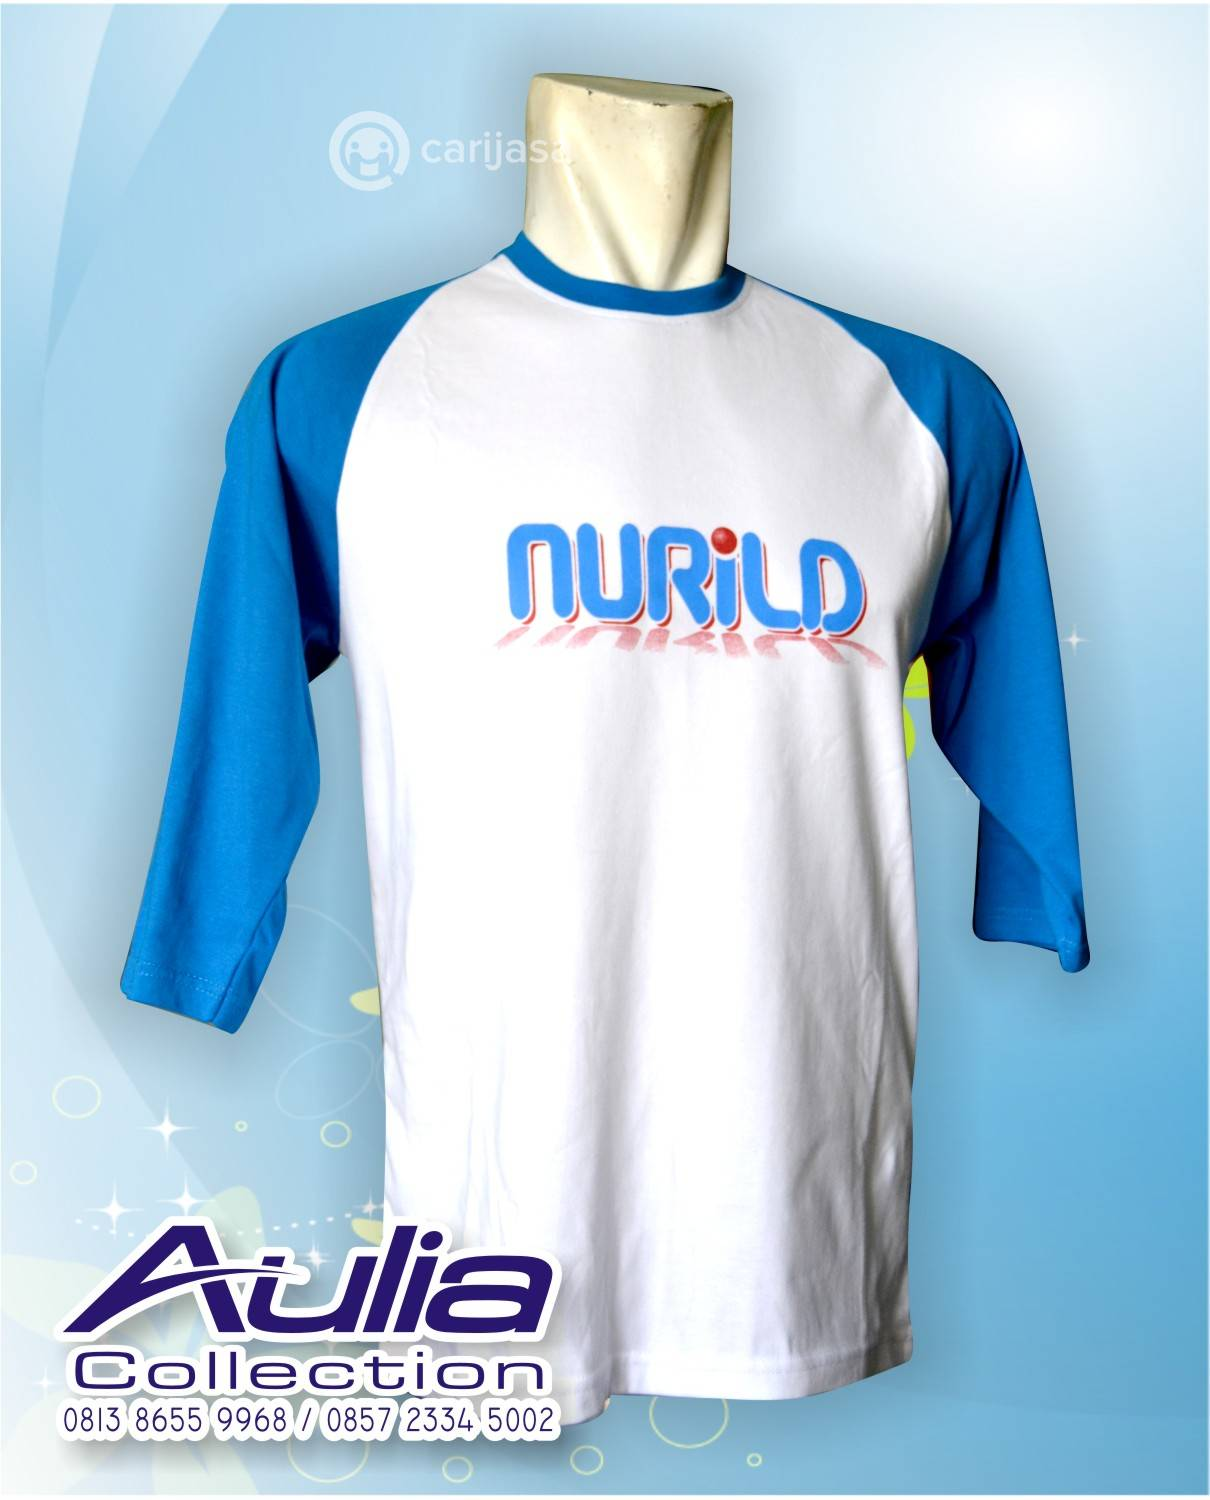 Aulia Collection Sukabumi